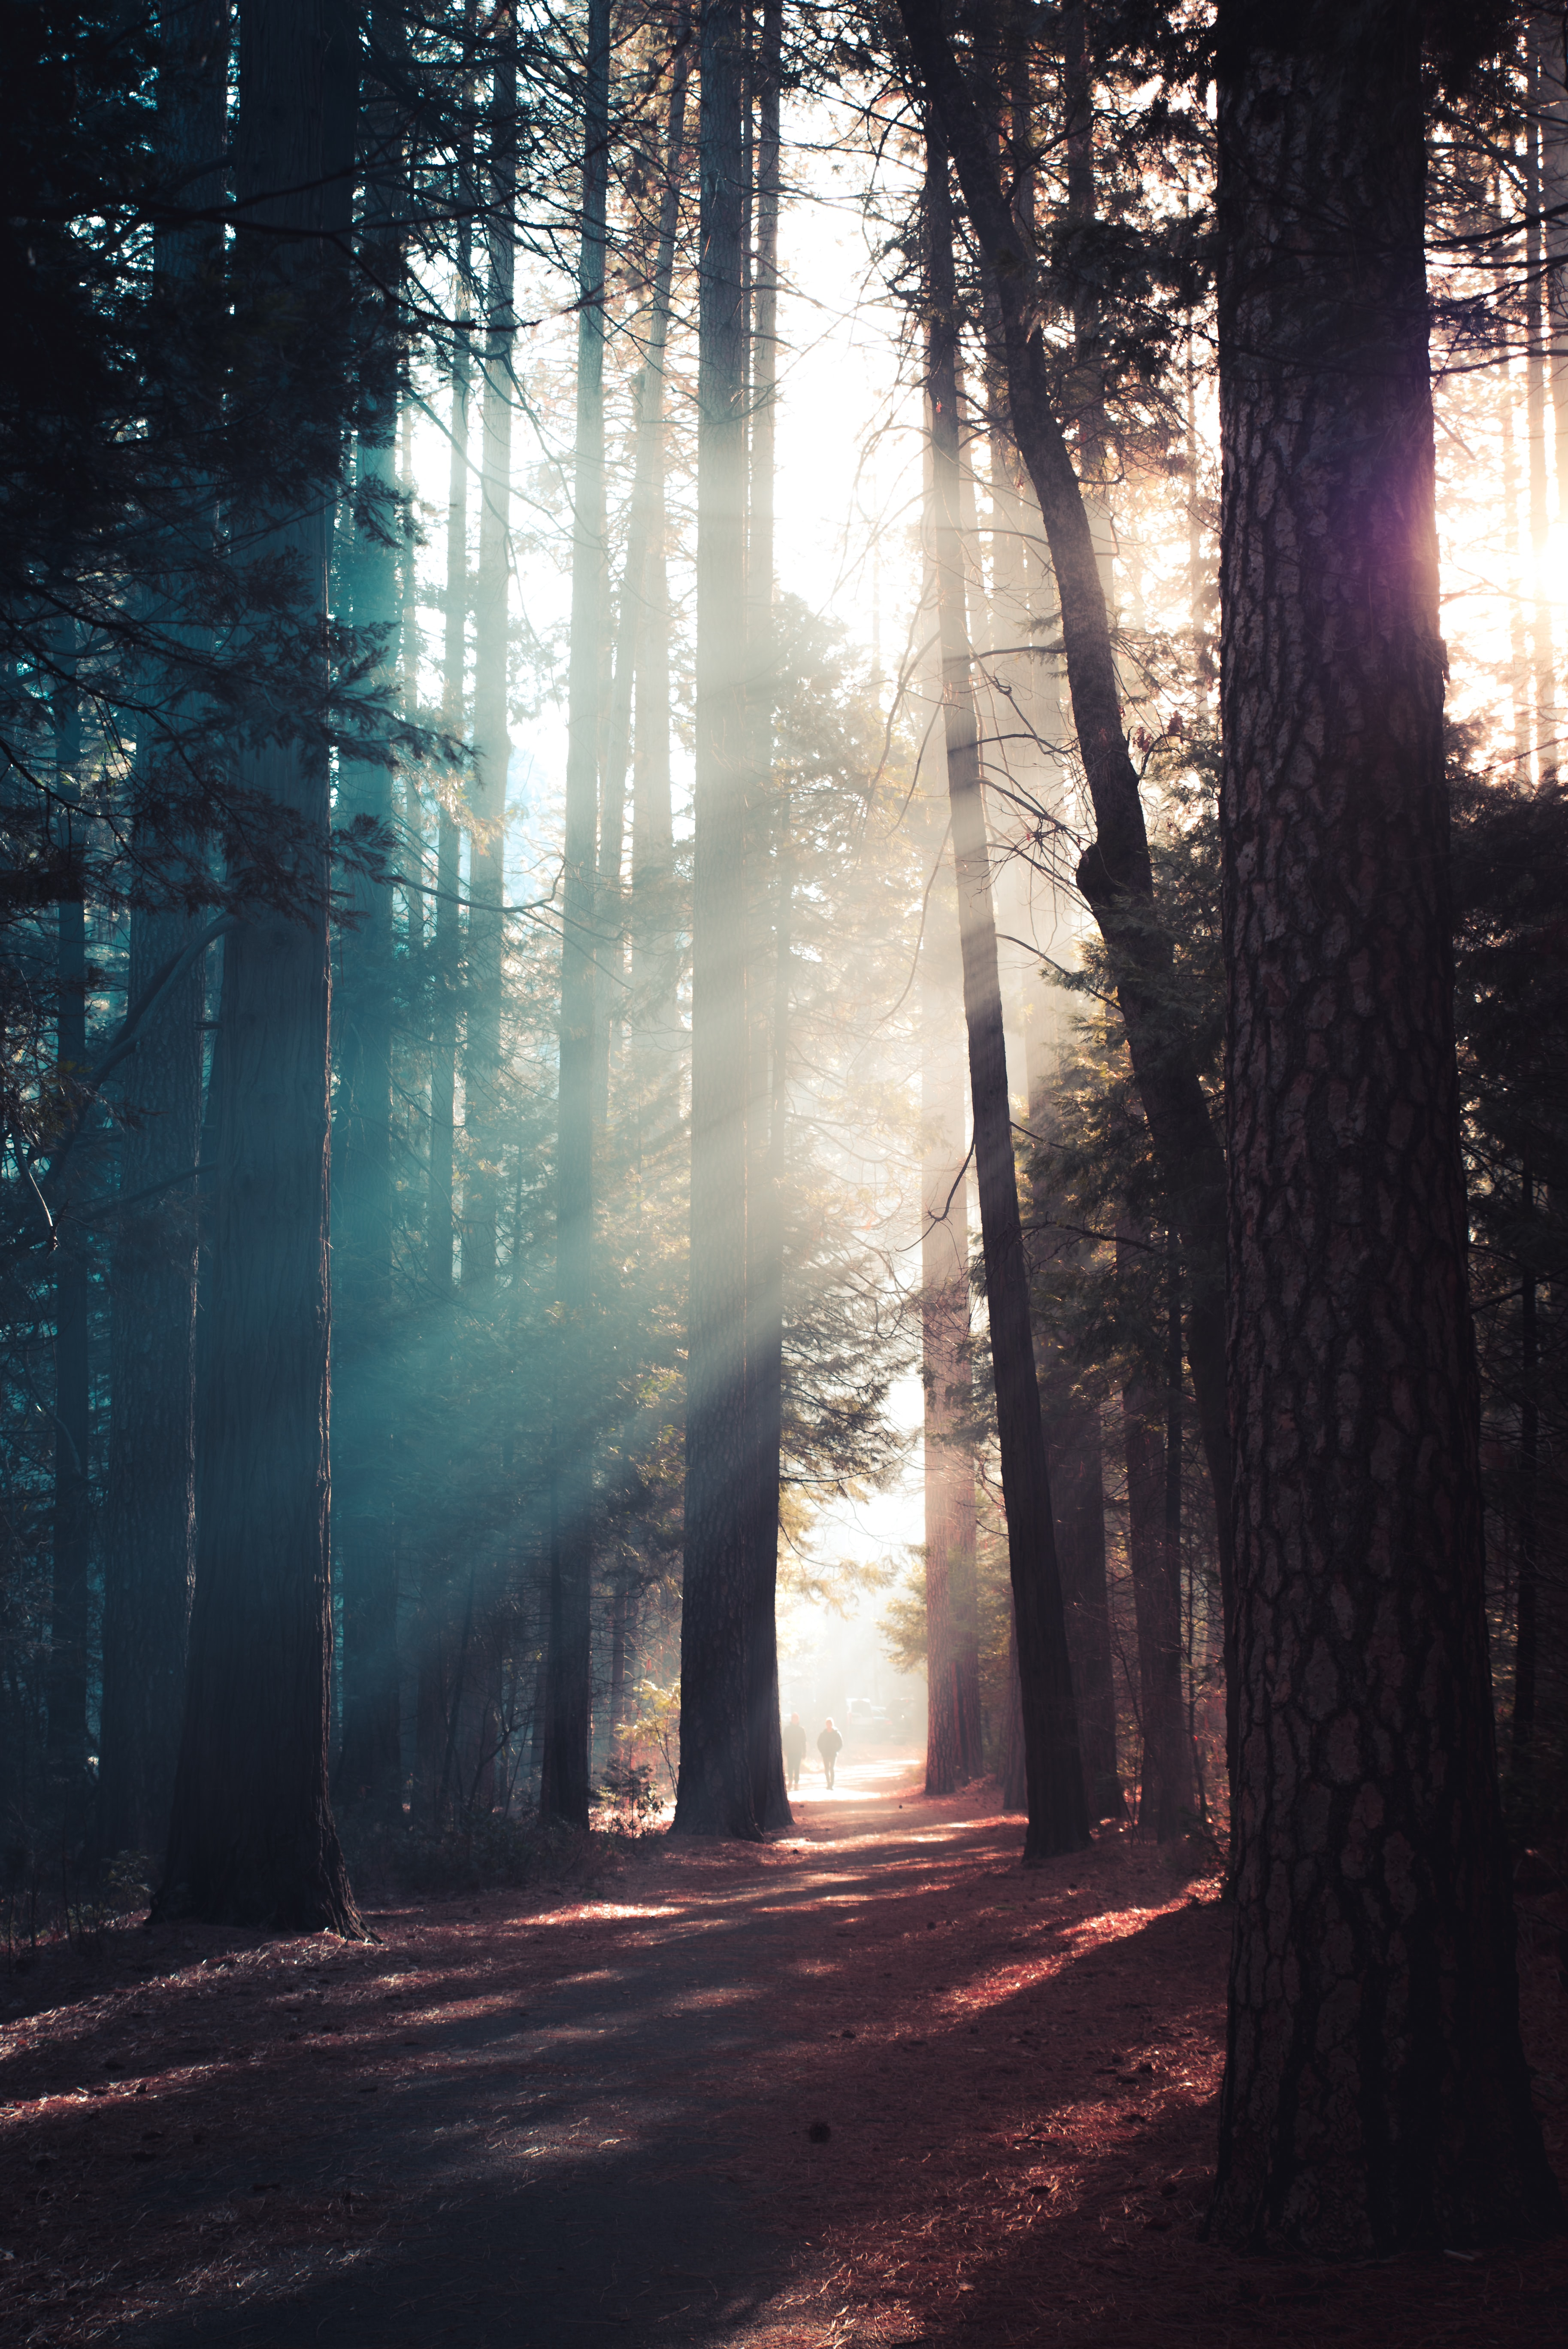 trees in forest with sun rays